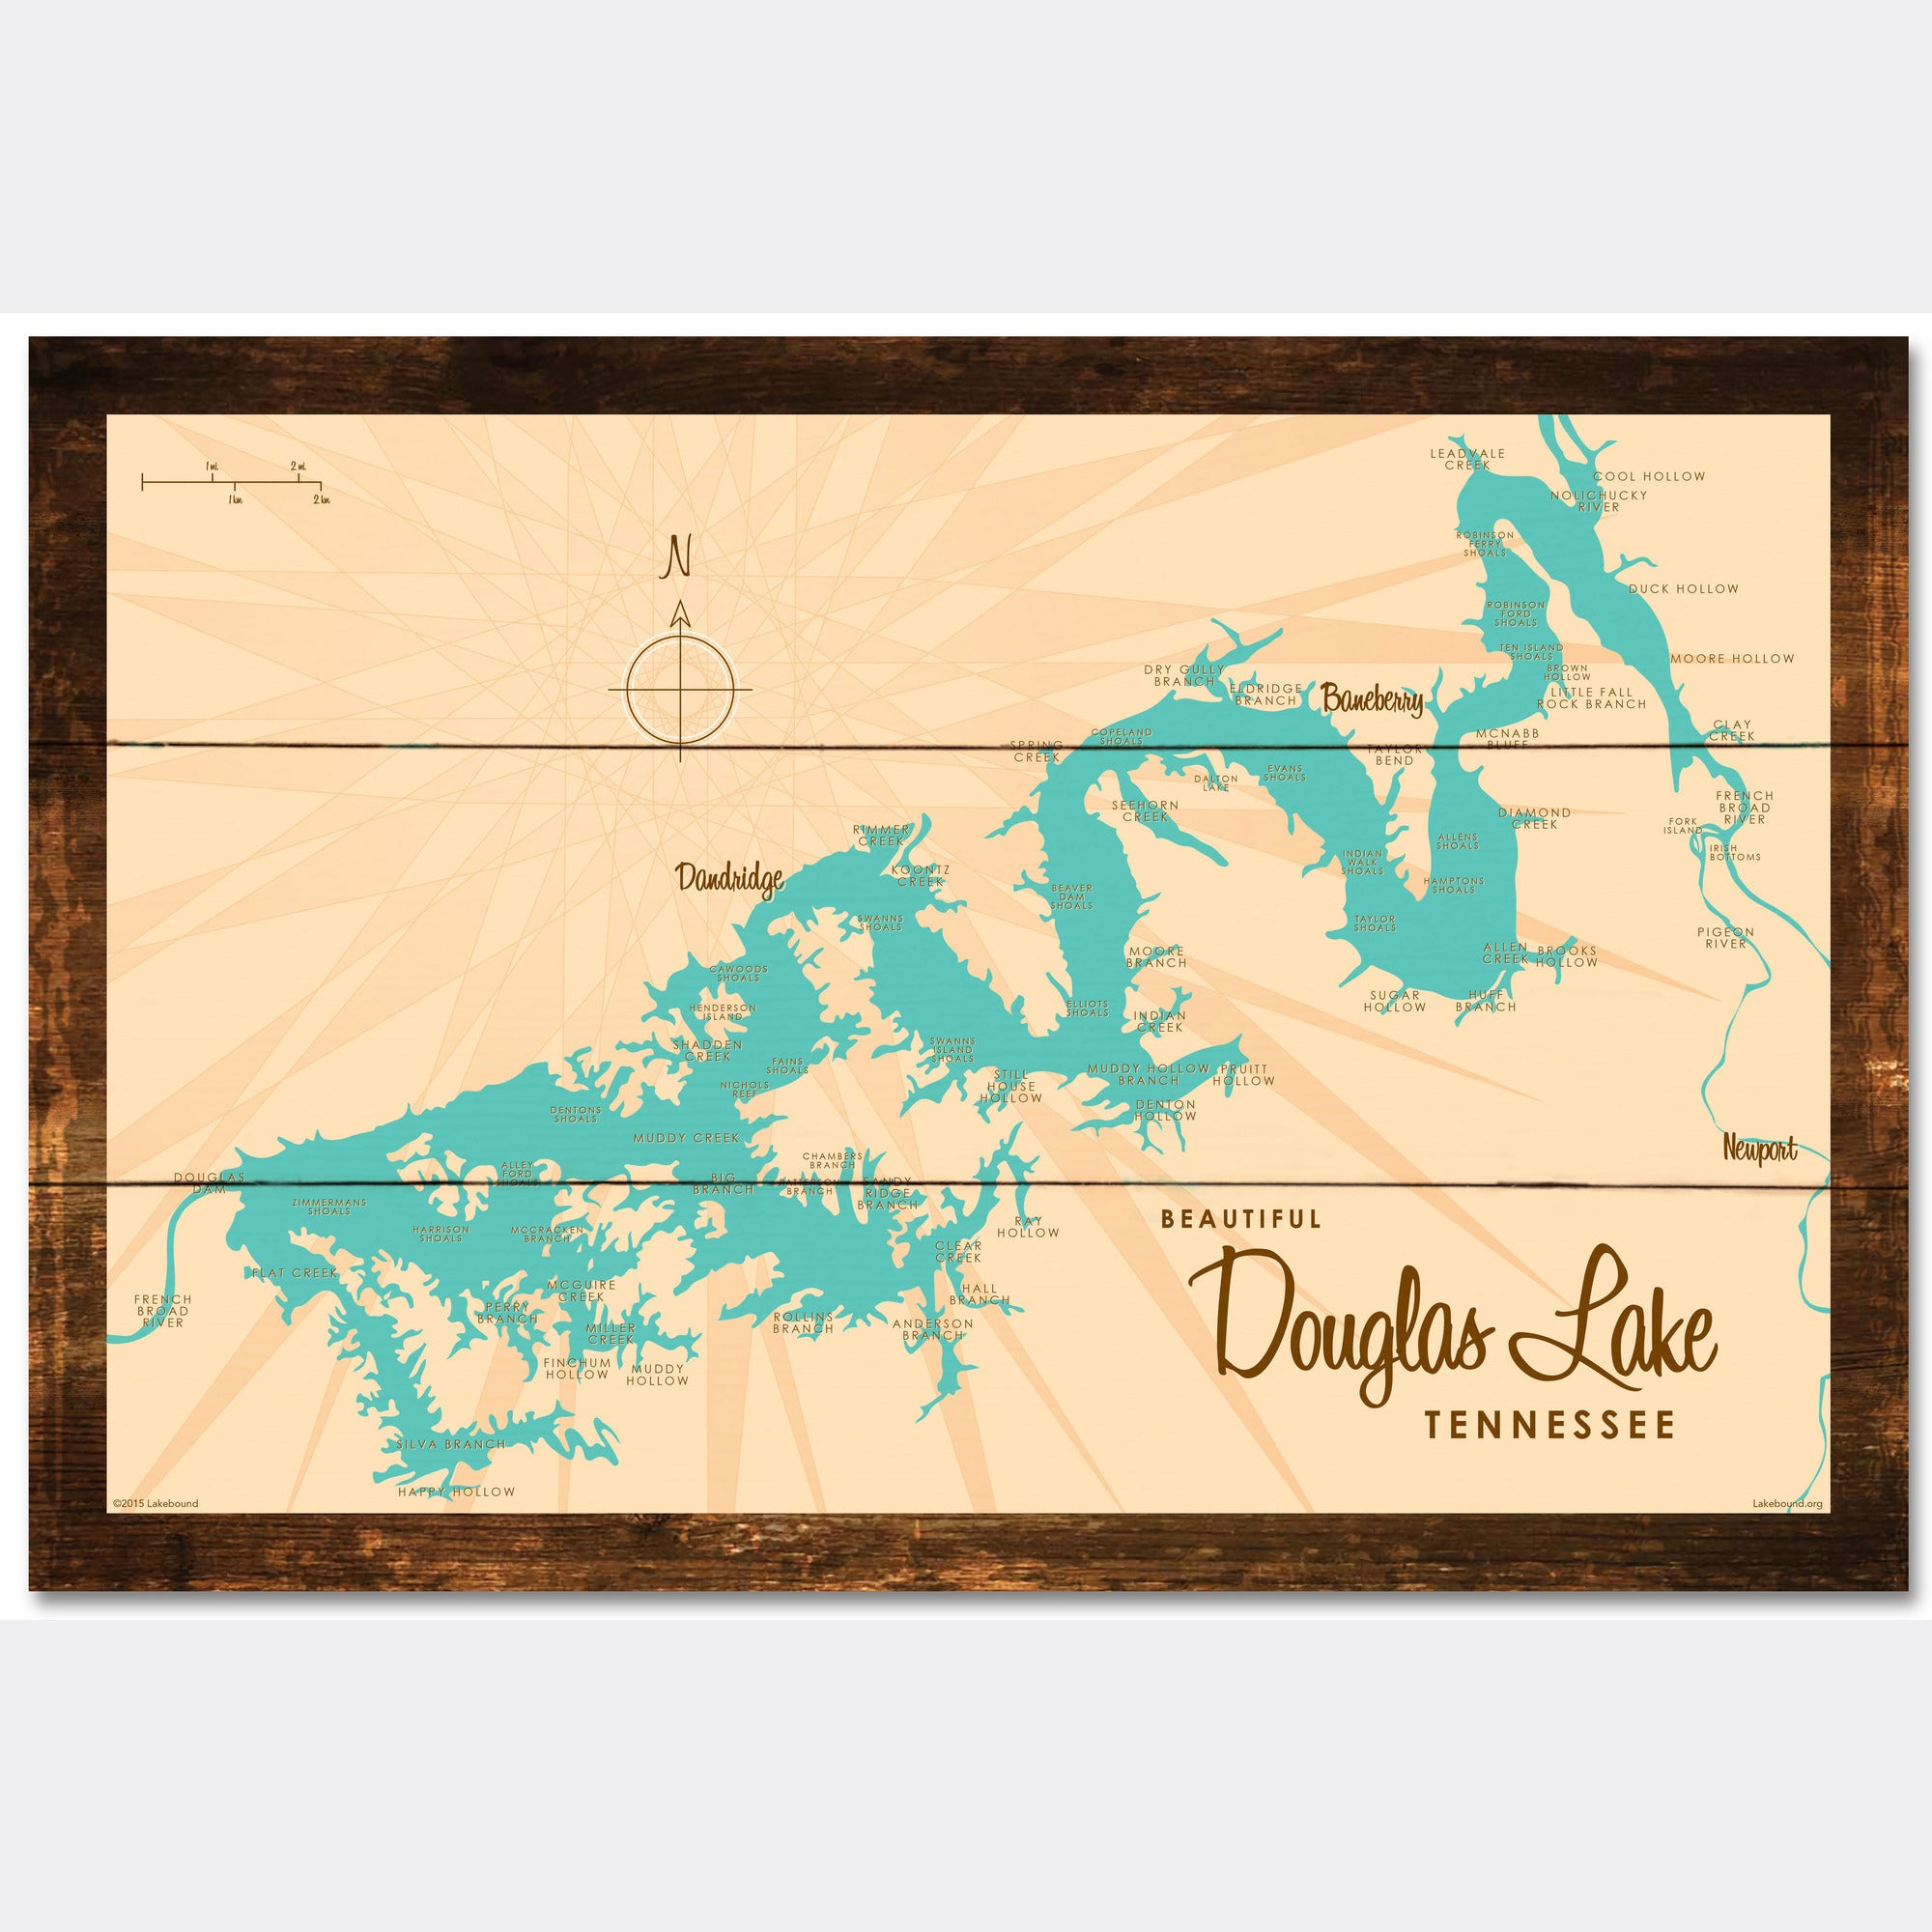 Douglas Lake Tennessee, Rustic Wood Sign Map Art